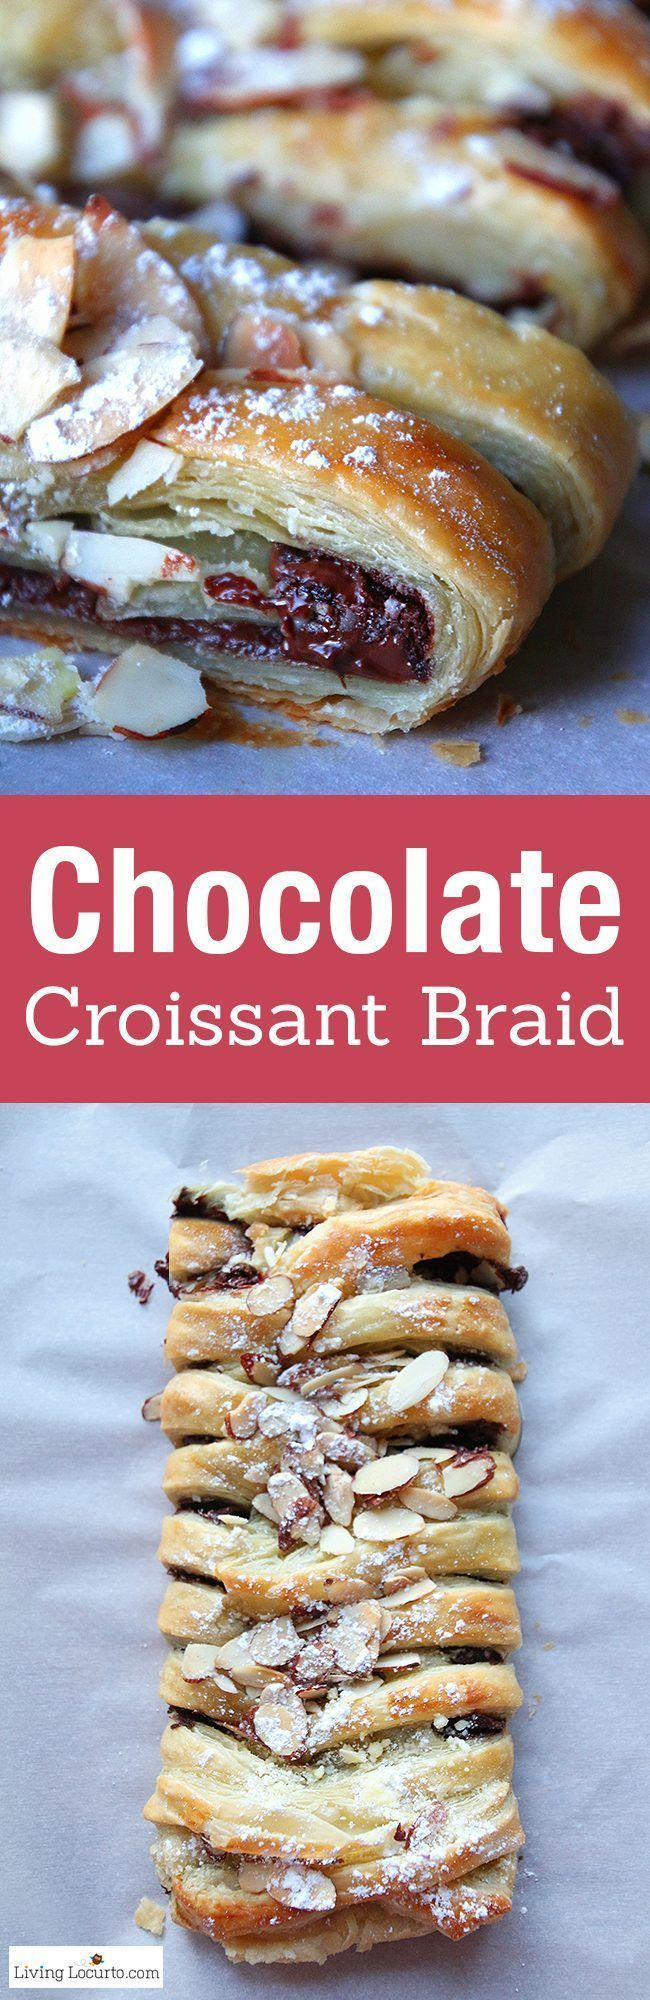 Warm gooey chocolate baked inside of a tasty crescent pastry braid. Easy almond topped recipe for any party, brunch, breakfast, or school event. Tastes like the perfect chocolate croissant!